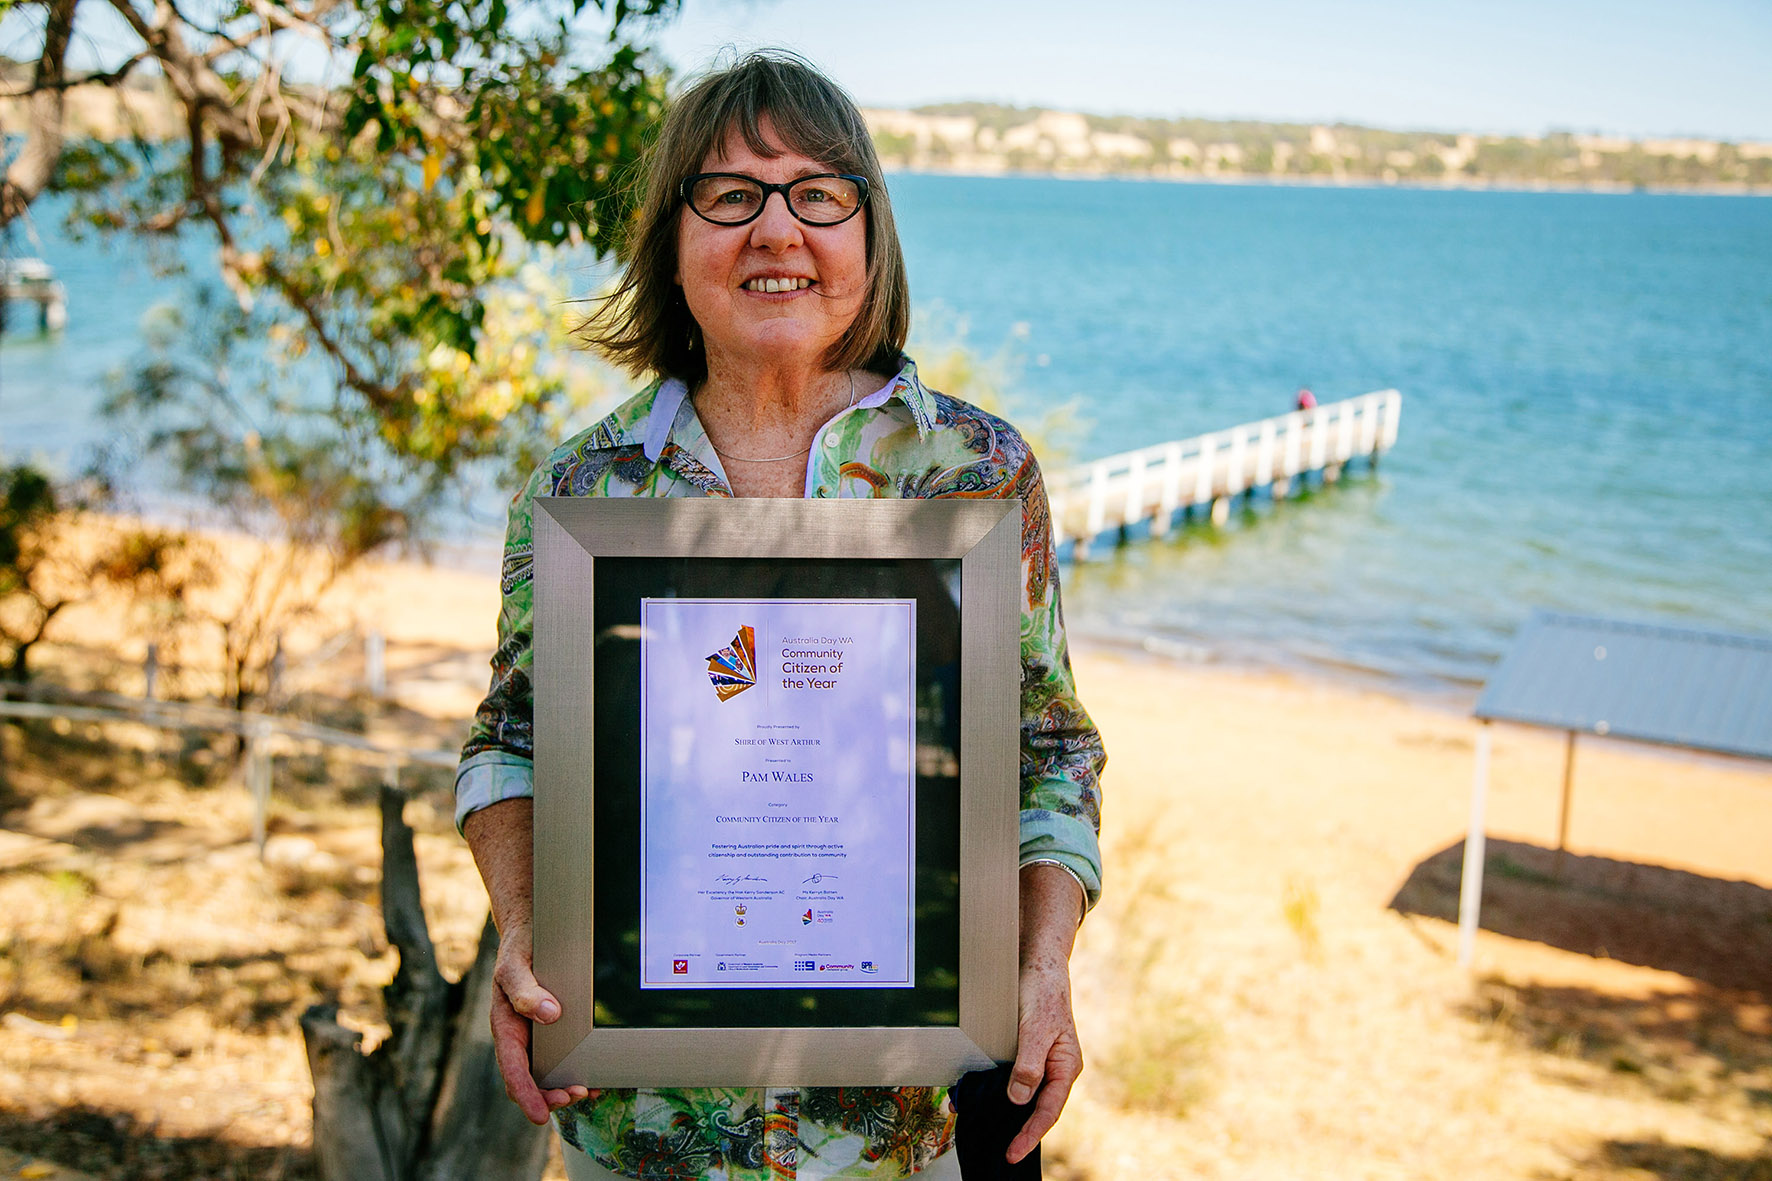 Citizen of the Year – Pam Wales